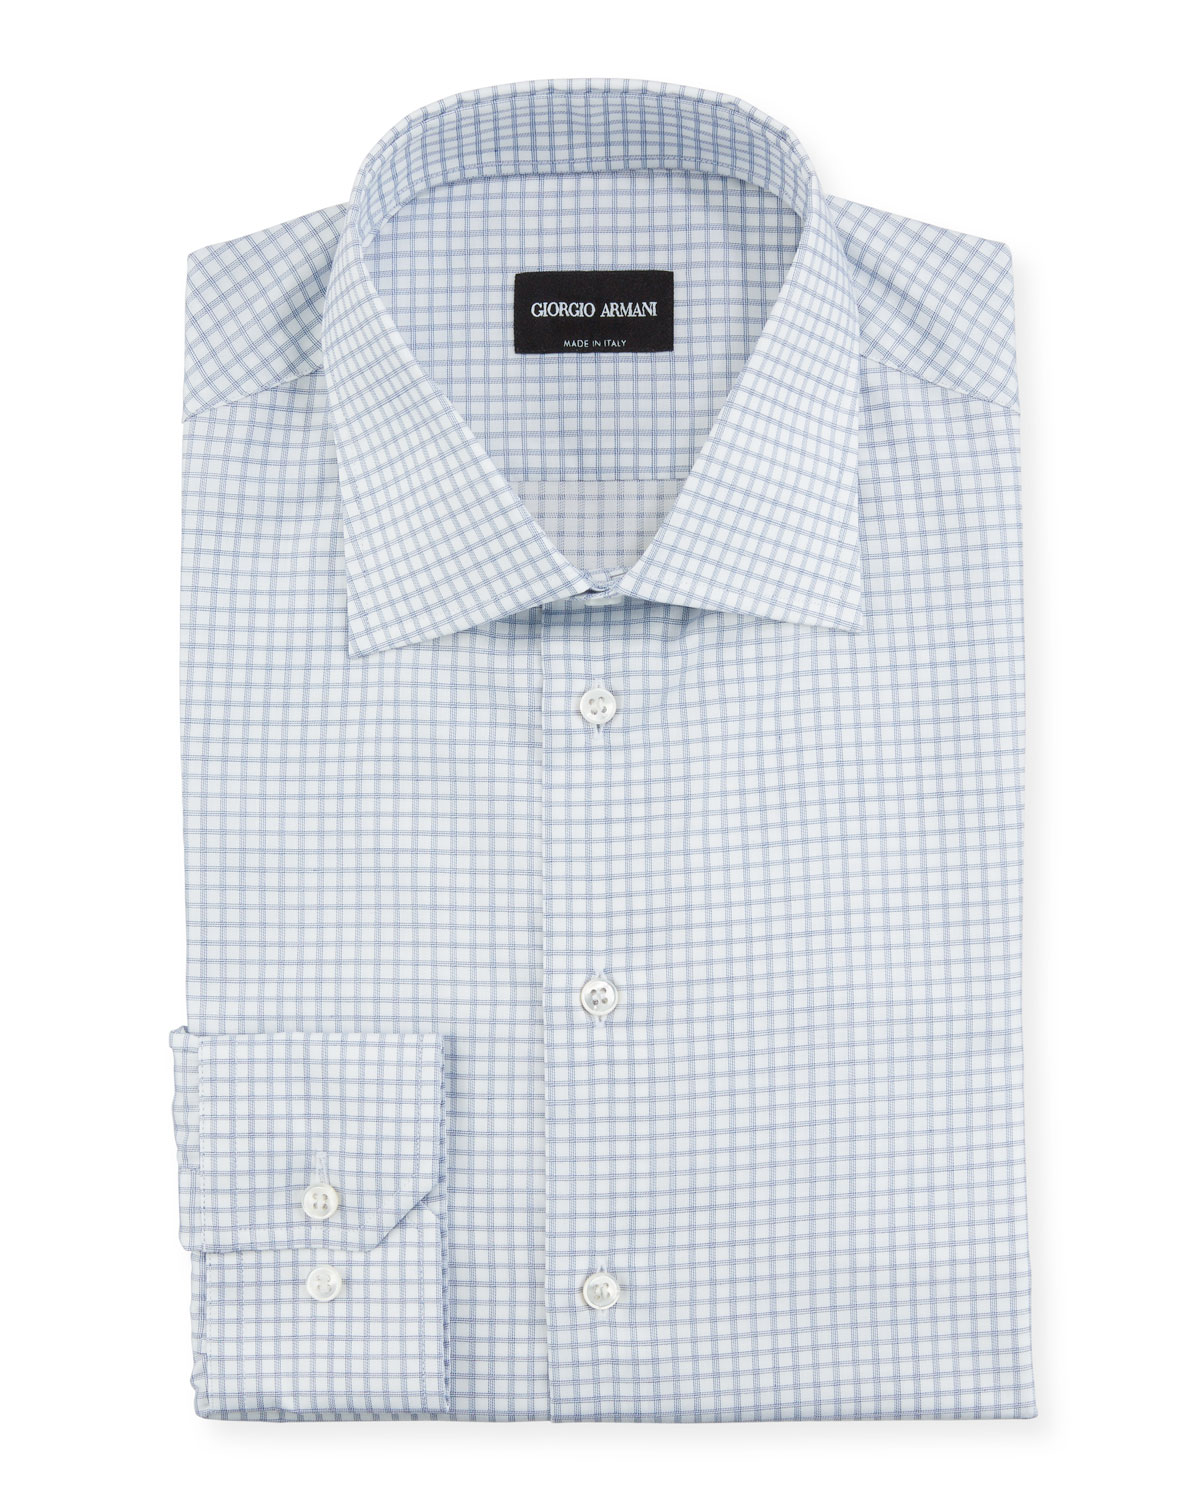 Giorgio Armani Dresses MEN'S CHECK DRESS SHIRT